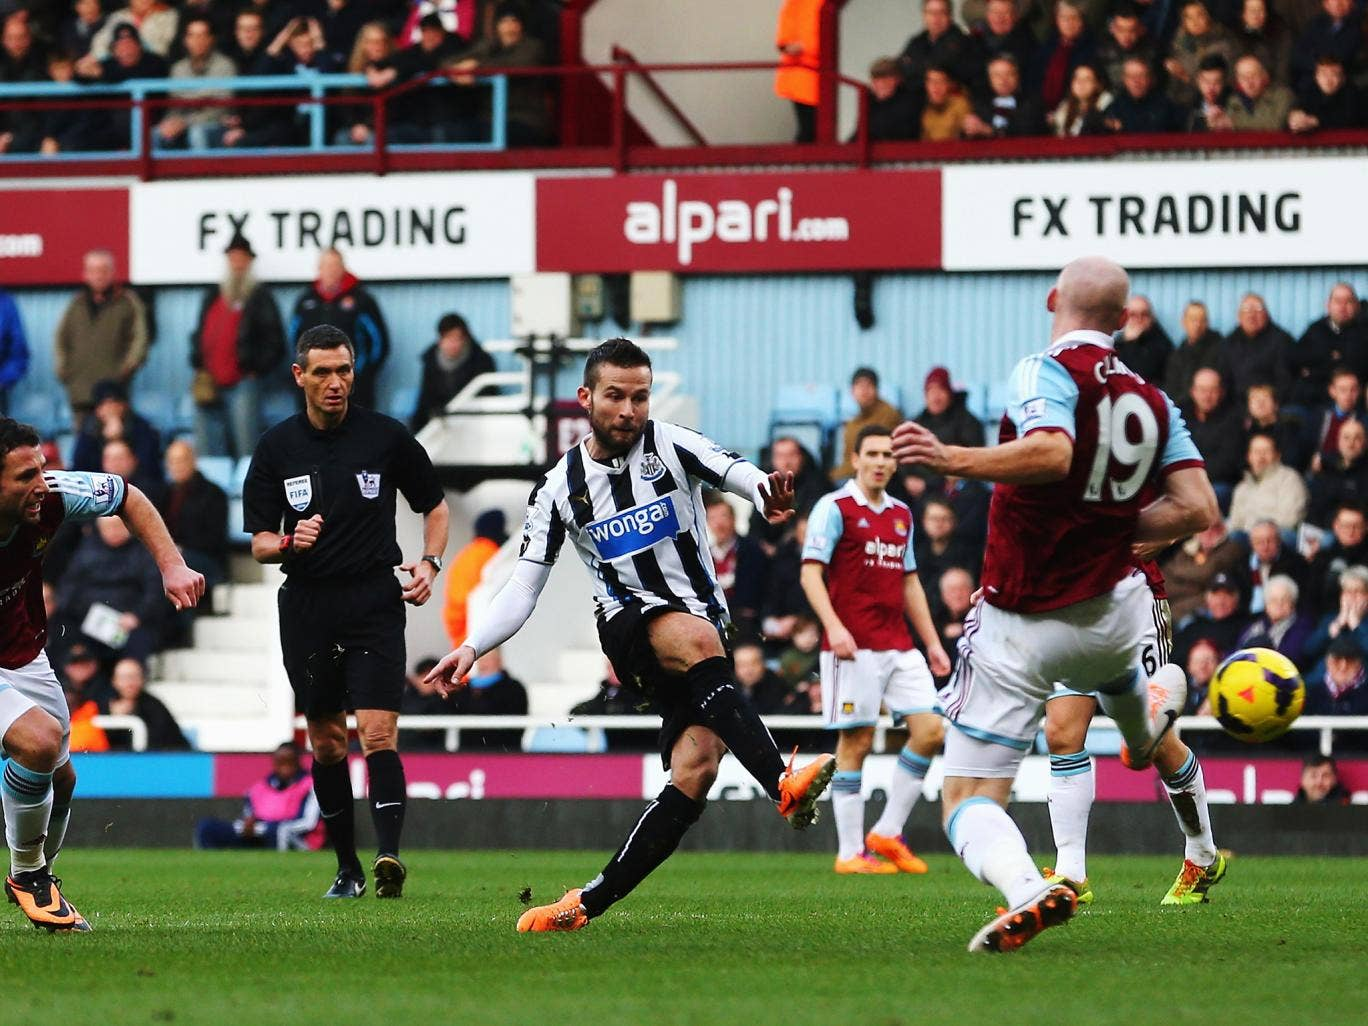 Yohan Cabaye scores against West Ham in Newcastle's 3-1 Premier League victory